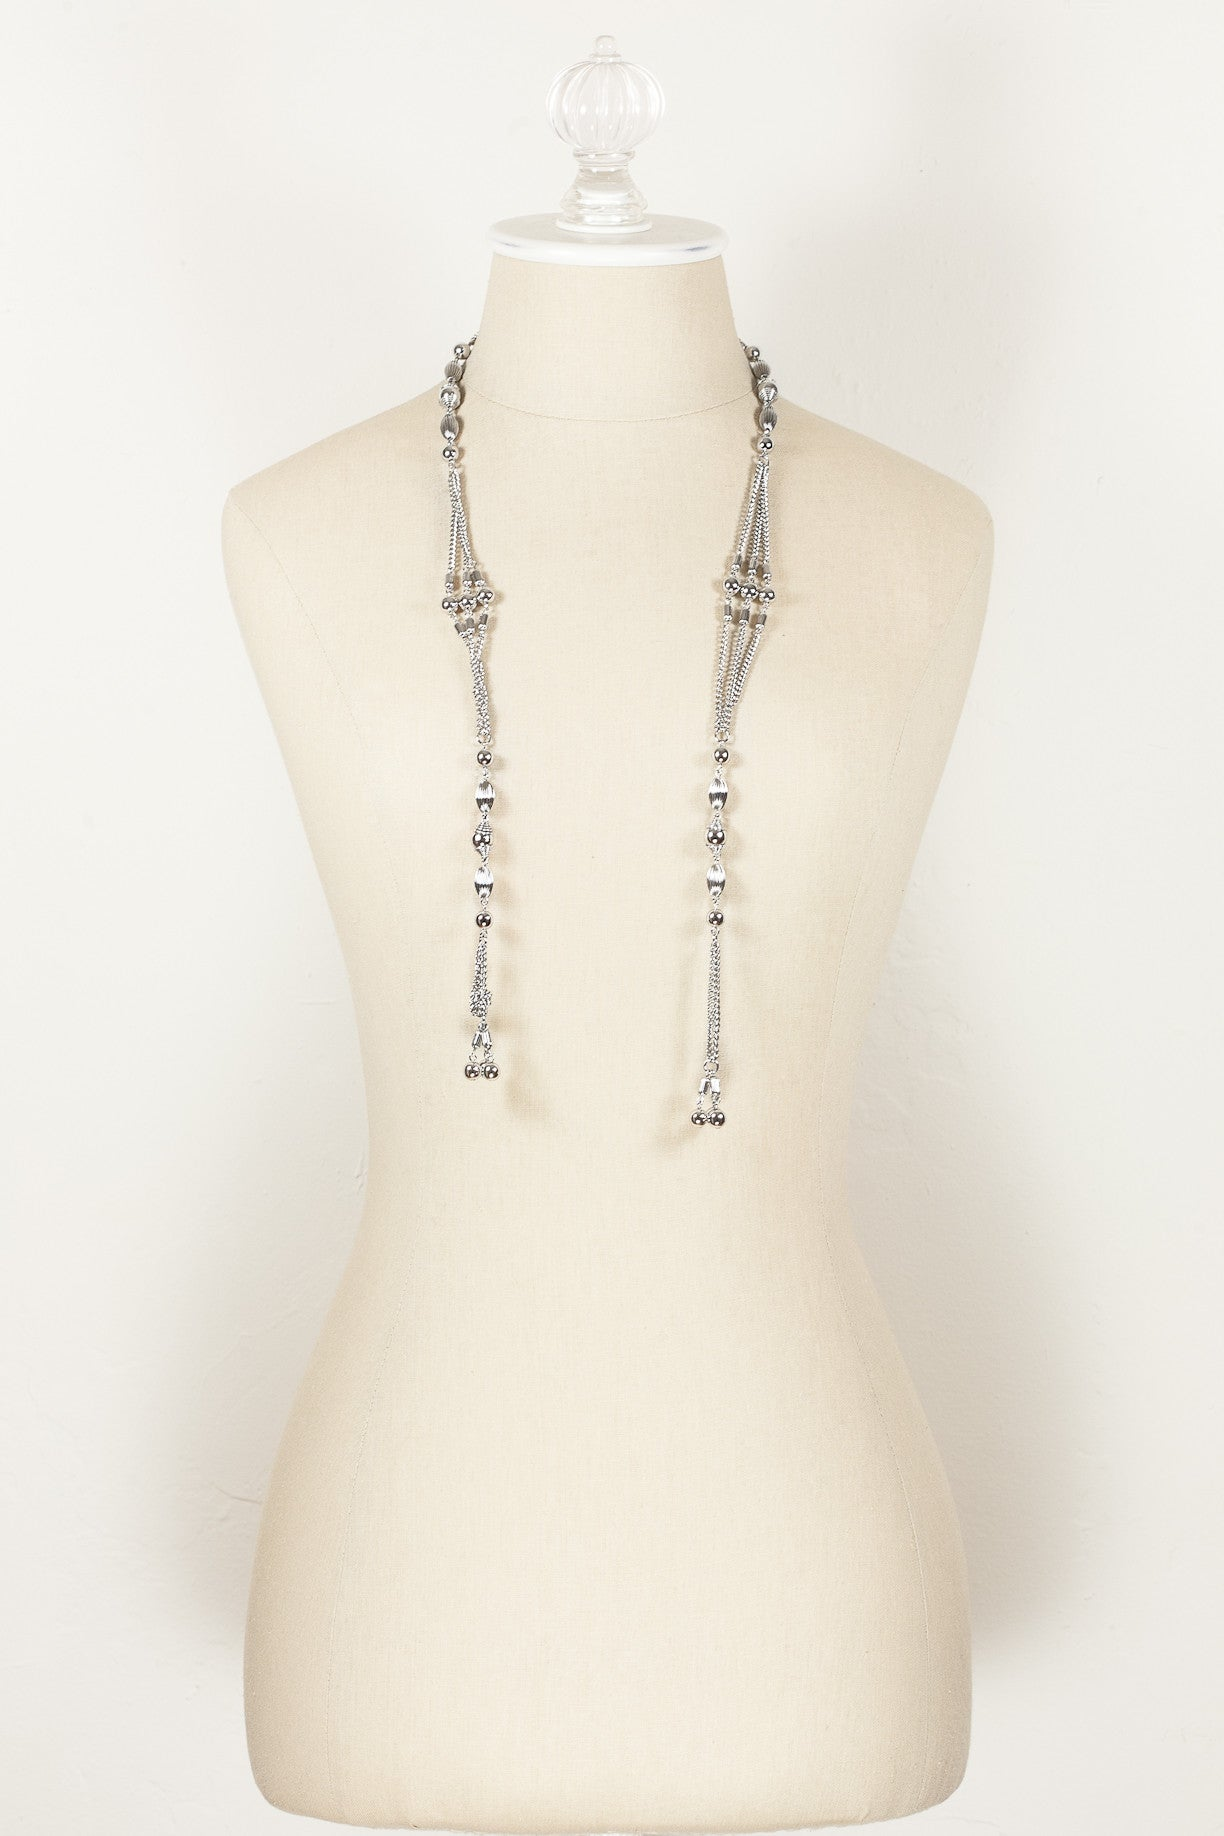 70's__Sarah Coventry__Silver Open Tassel Necklace